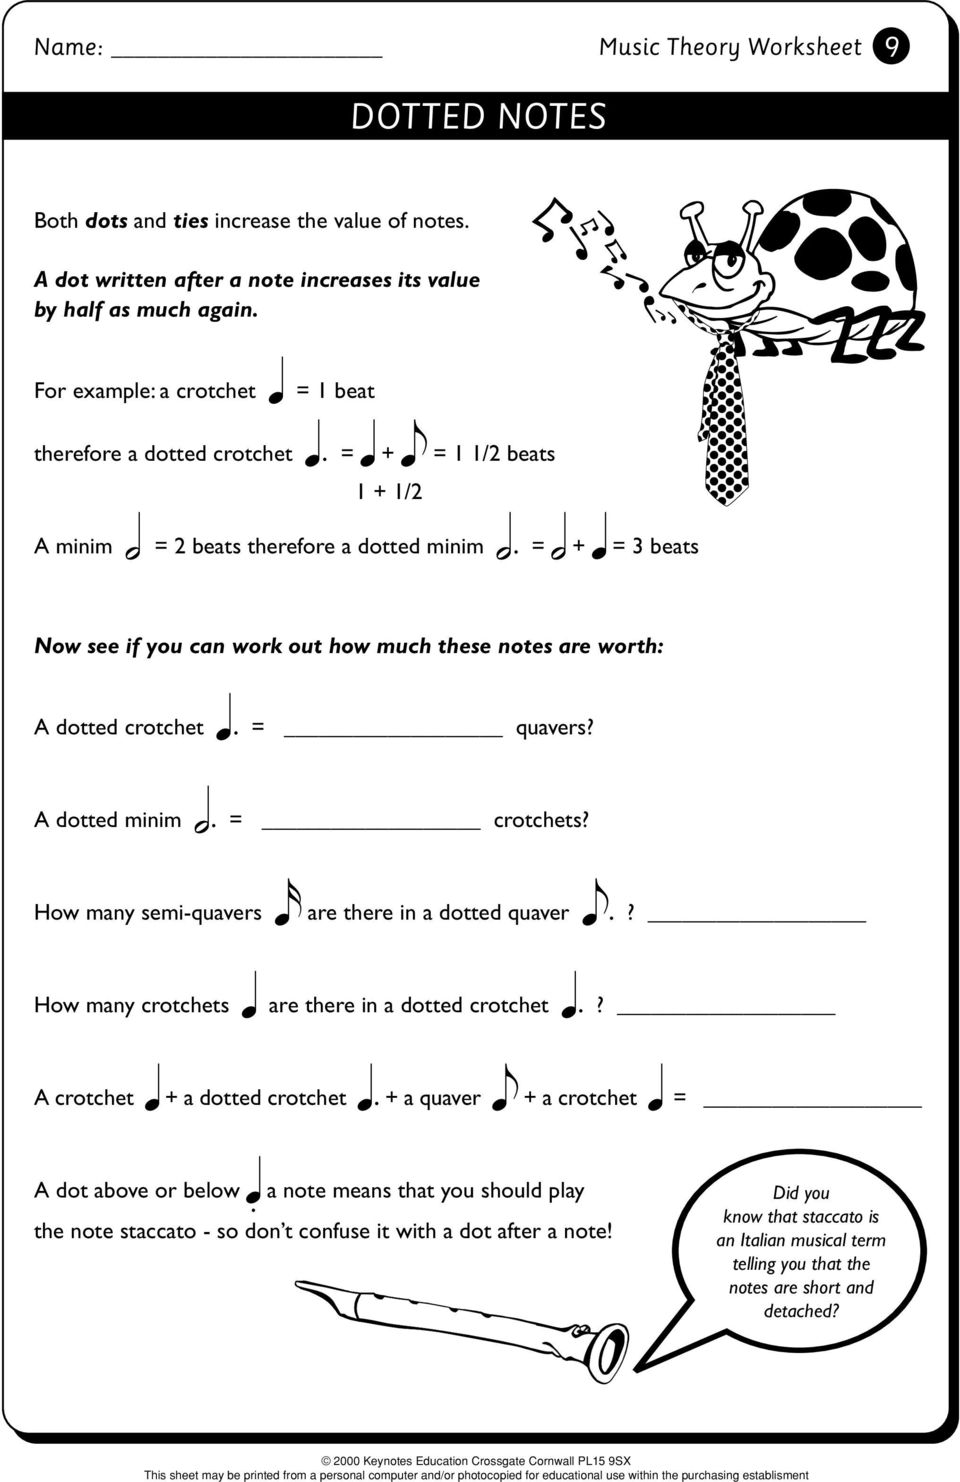 Music Theory Worksheet  Music Theory 1 - PDF